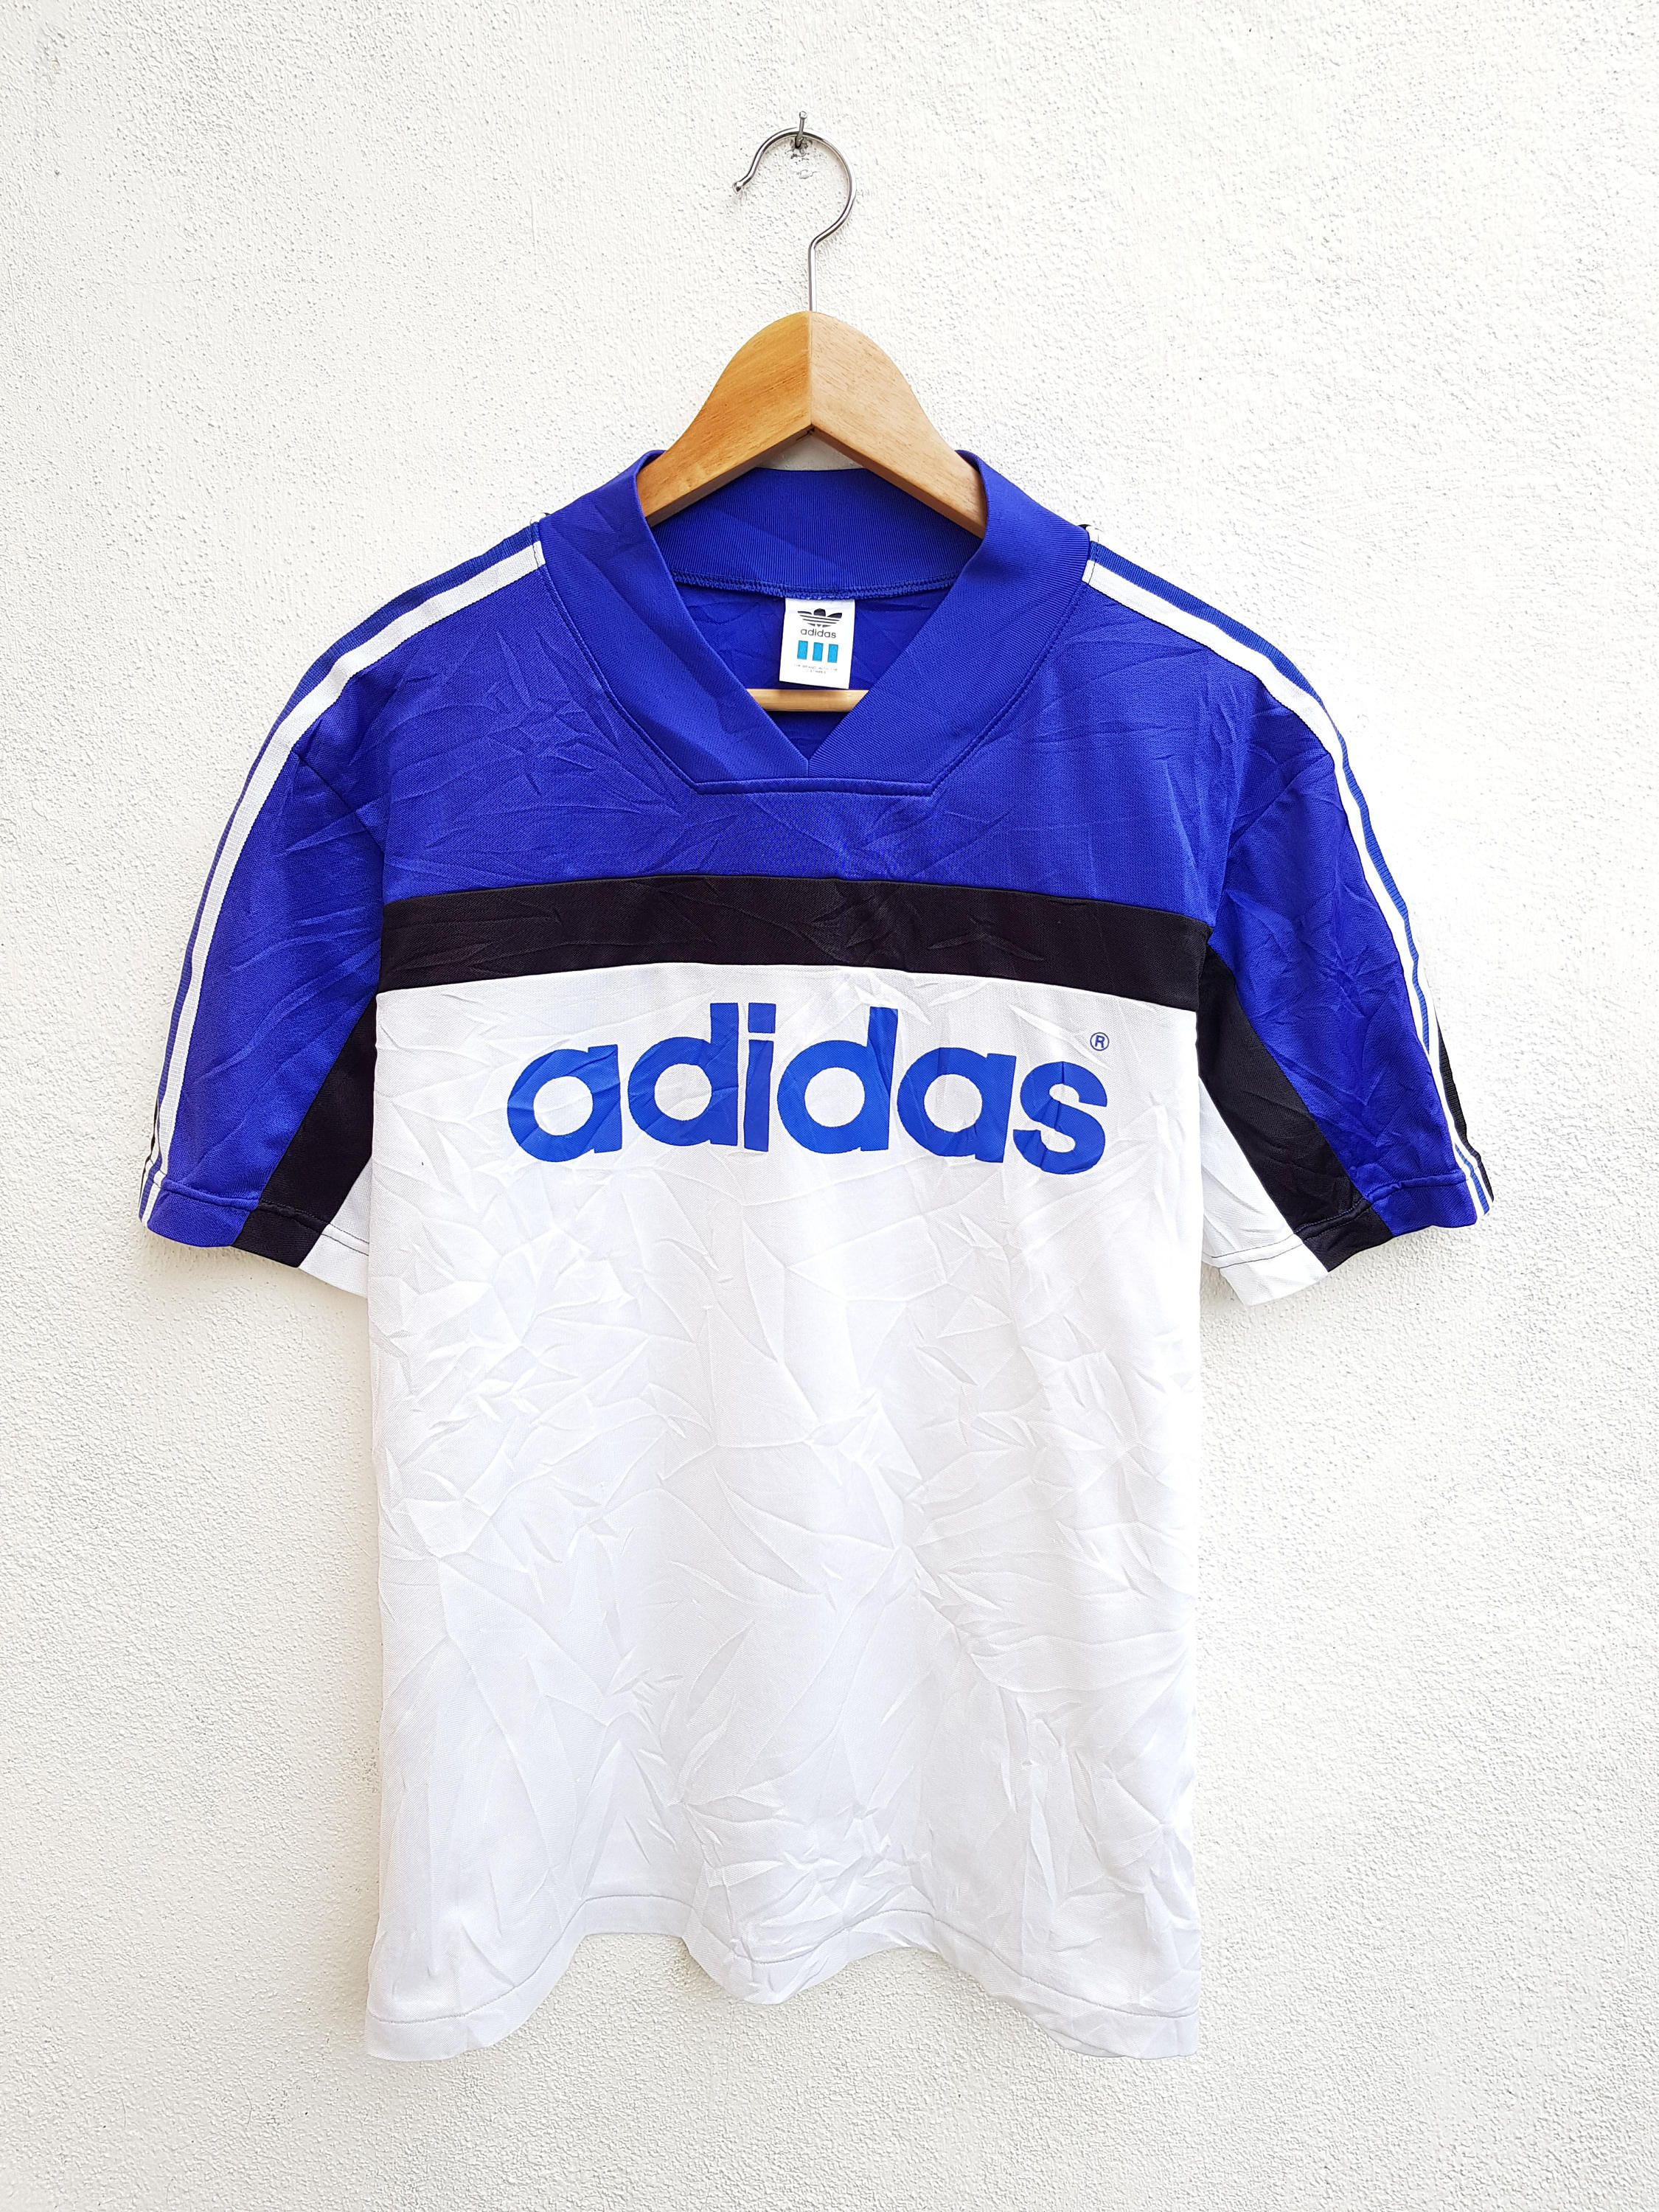 b8a1a5db47f4d Vintage 90s ADIDAS Spell Out Color Block Soccer Style Sportswear 3 stripes  Jersey V neck T-Shirt Size O by BubaGumpBudu on Etsy